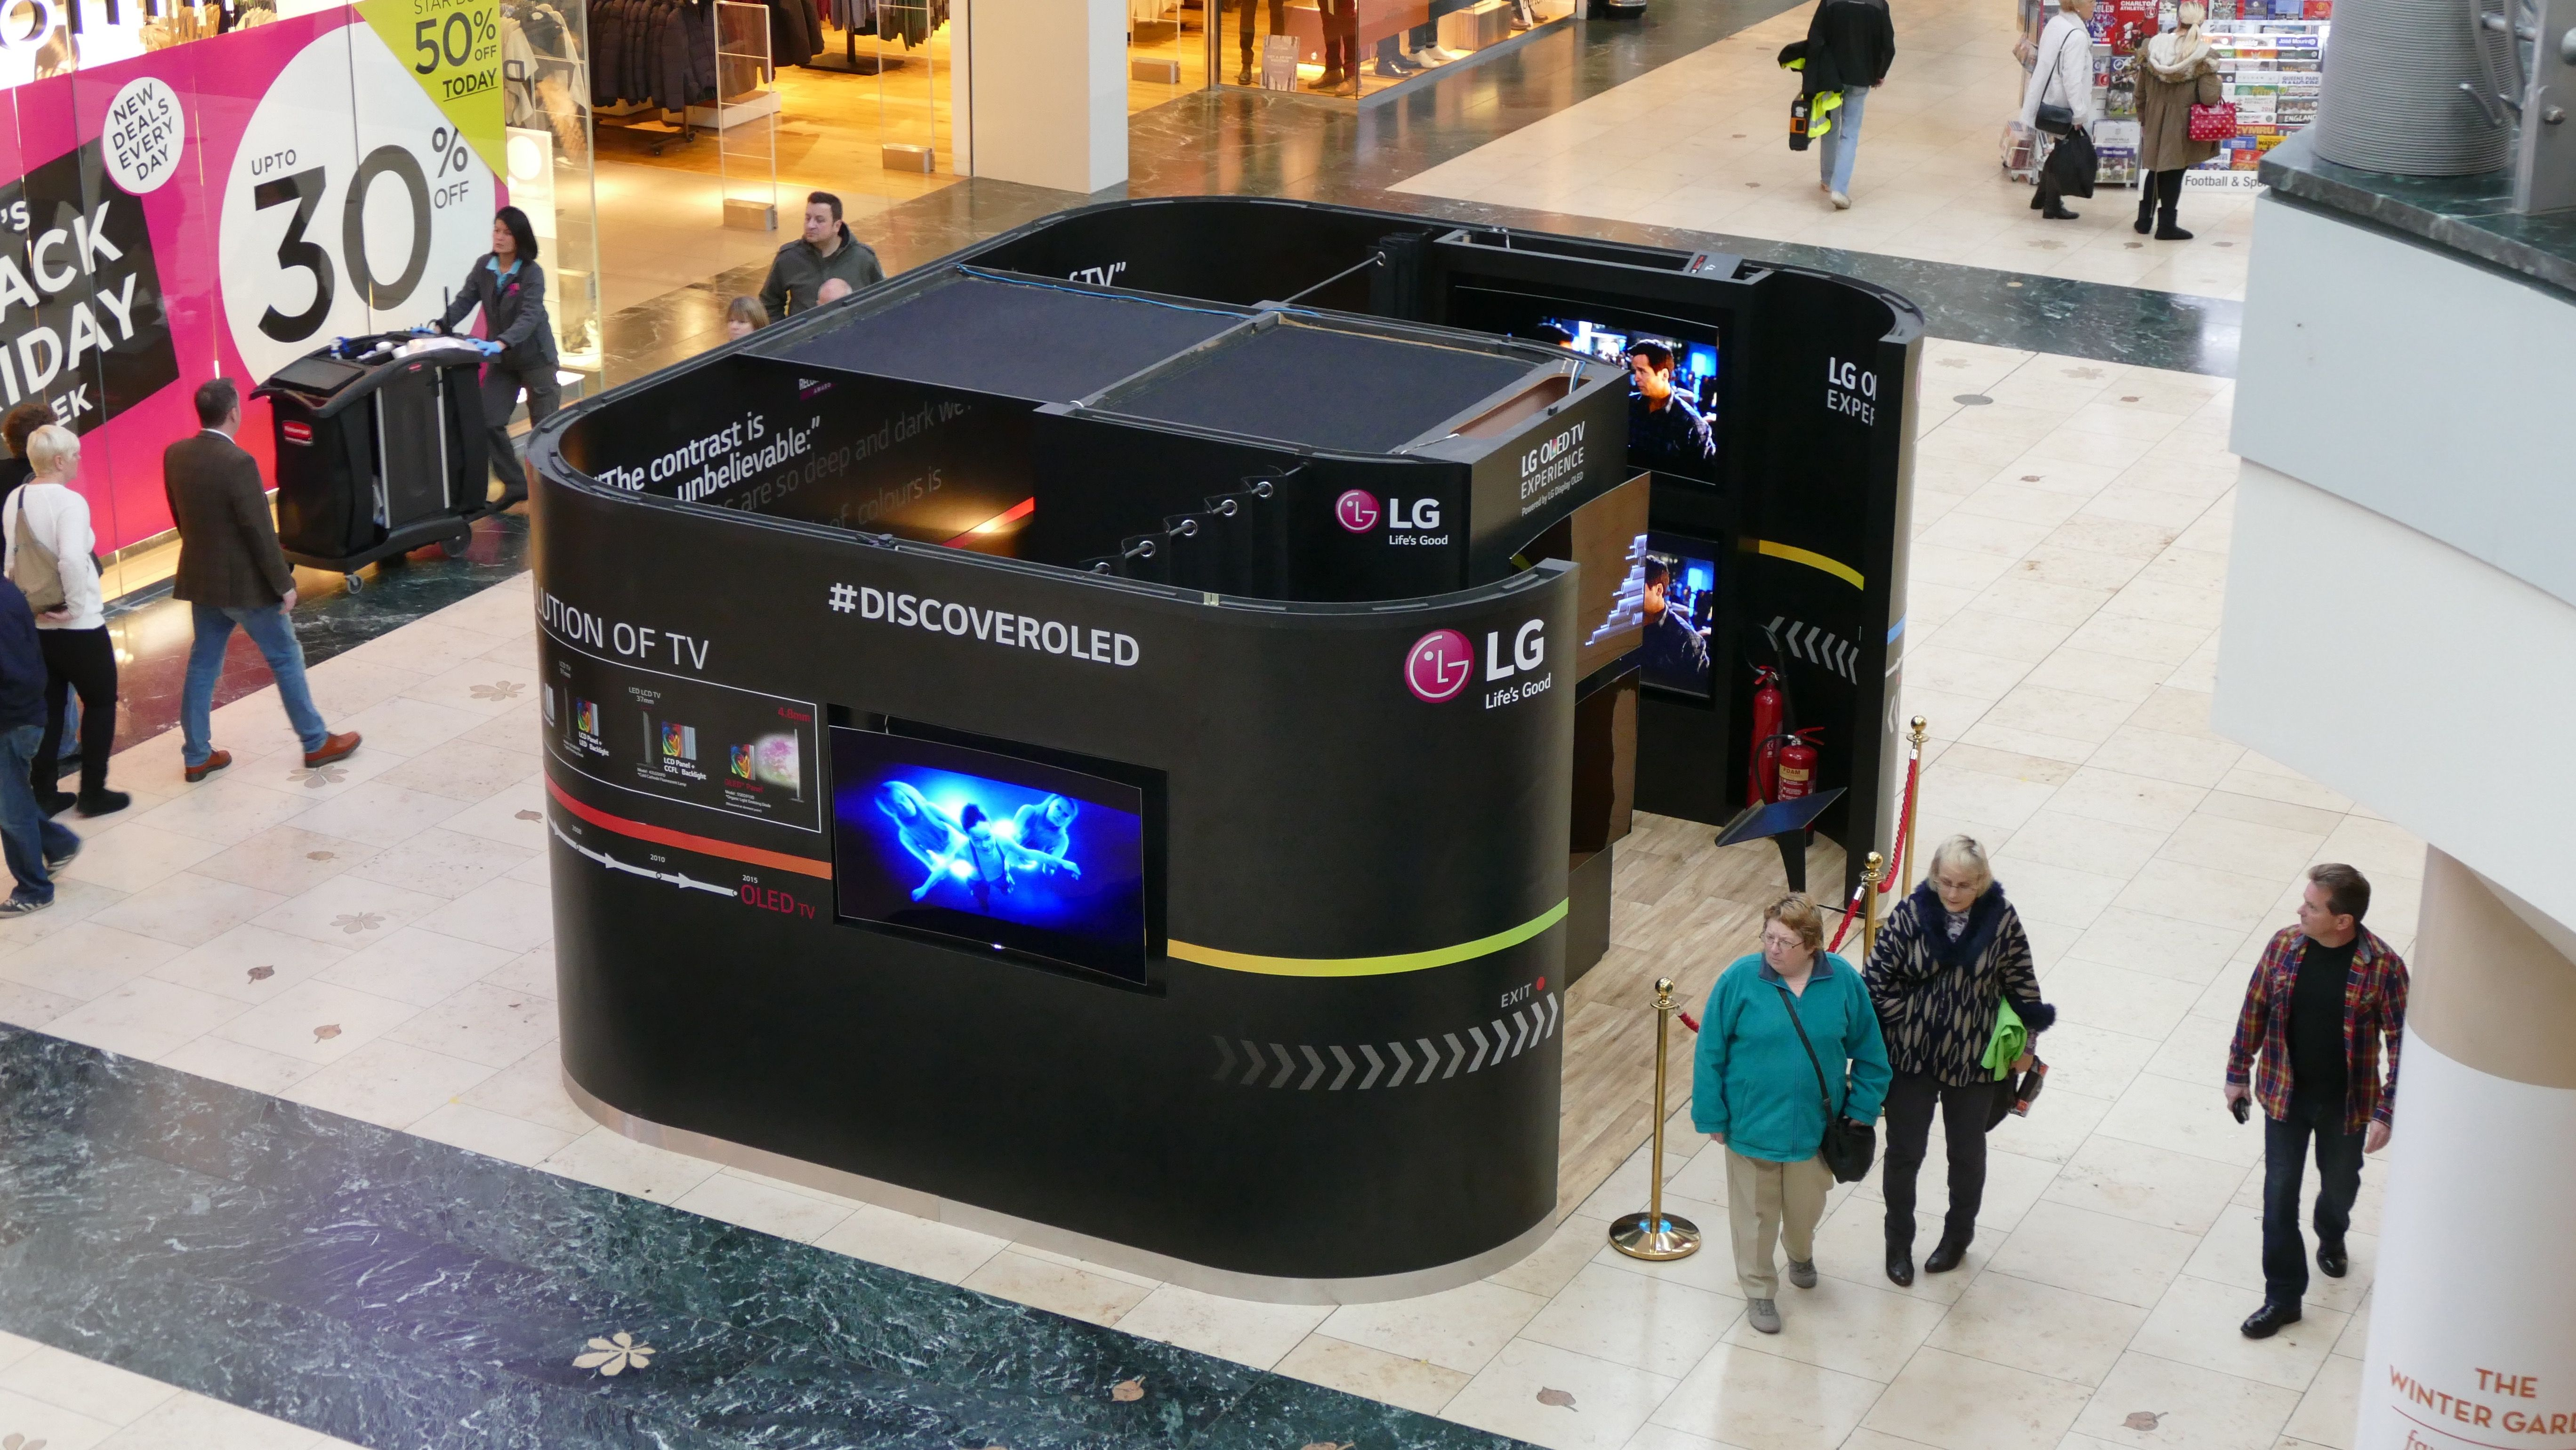 LG Roadshow pod, complete with 7 LG OLED TV screens, toured